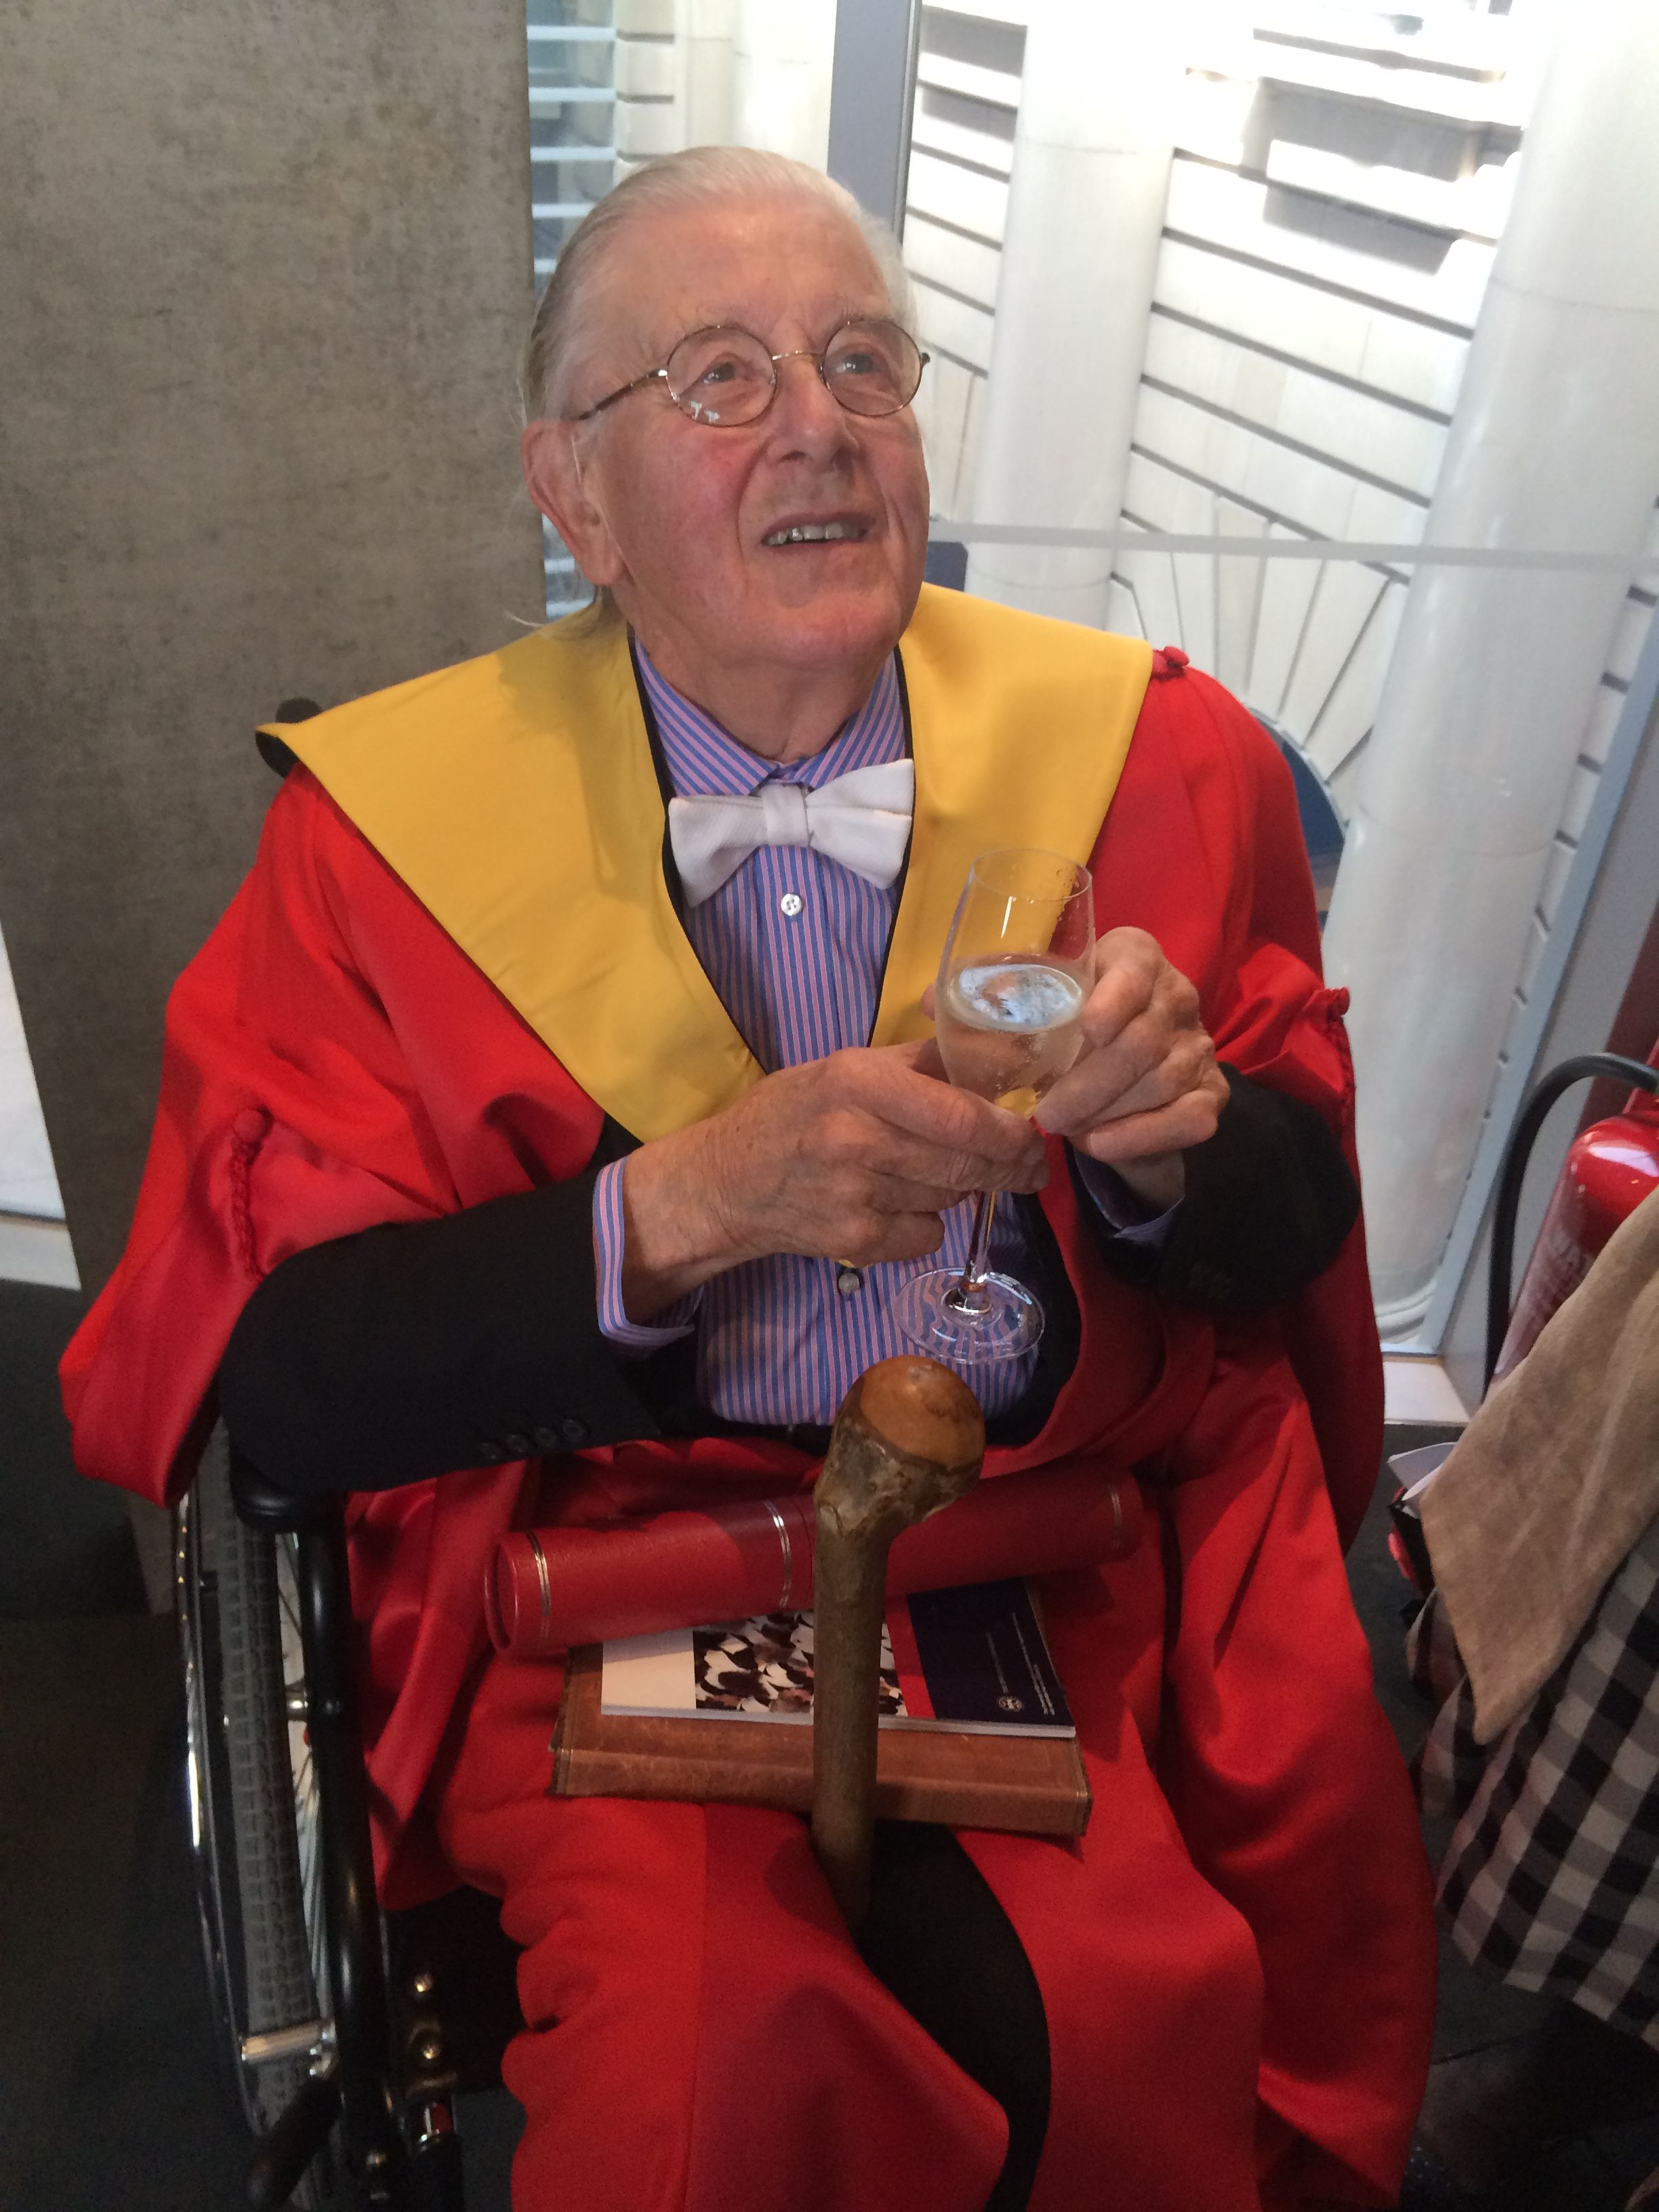 Patrick Reyntiens celebrating his doctorate from Edinburgh University on June 27th 2015